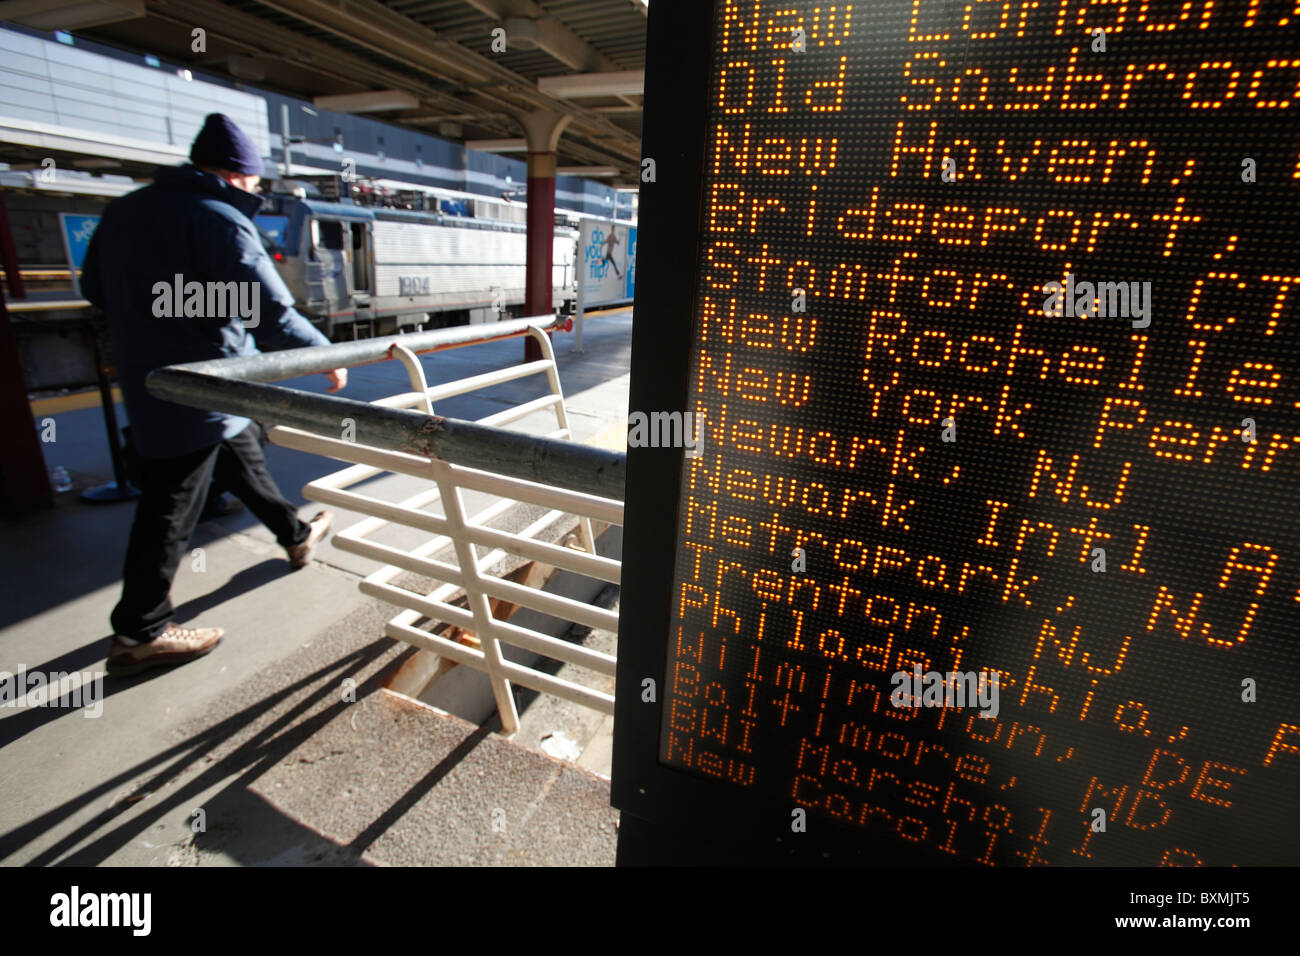 A person heads towards a train, South Station, Boston, Massachusetts - Stock Image